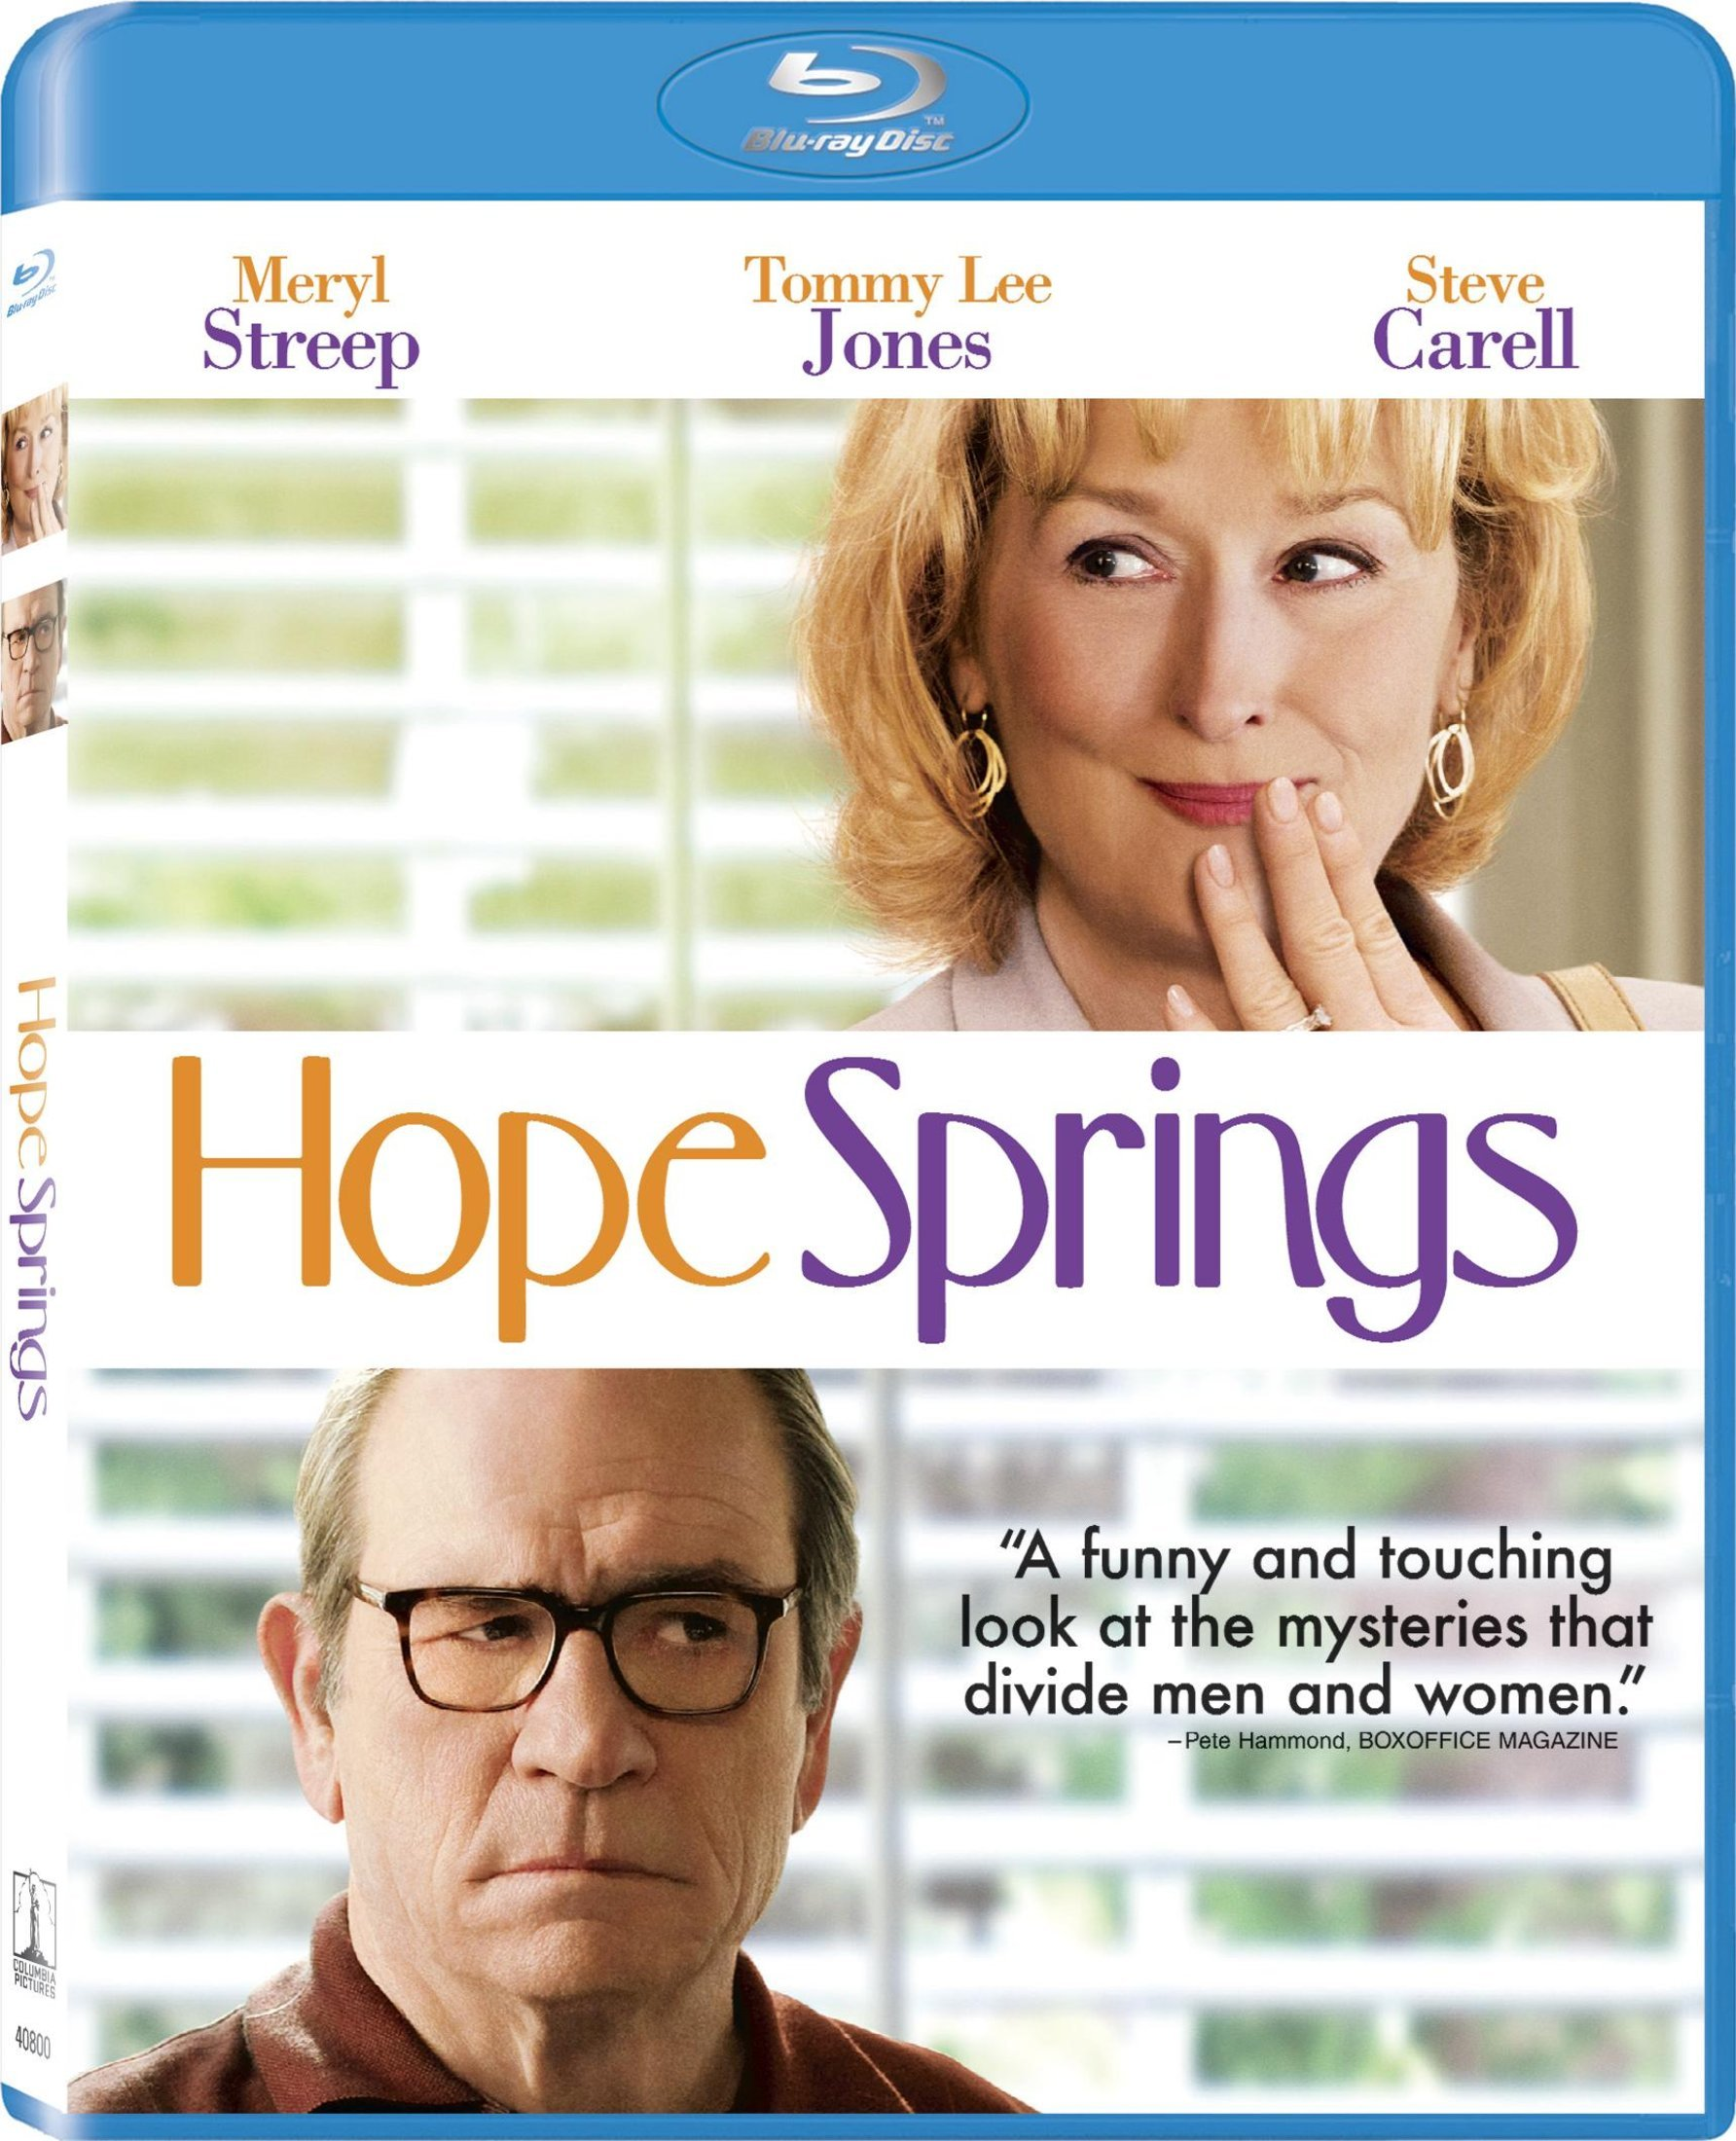 Hope Springs Blu-Ray Review